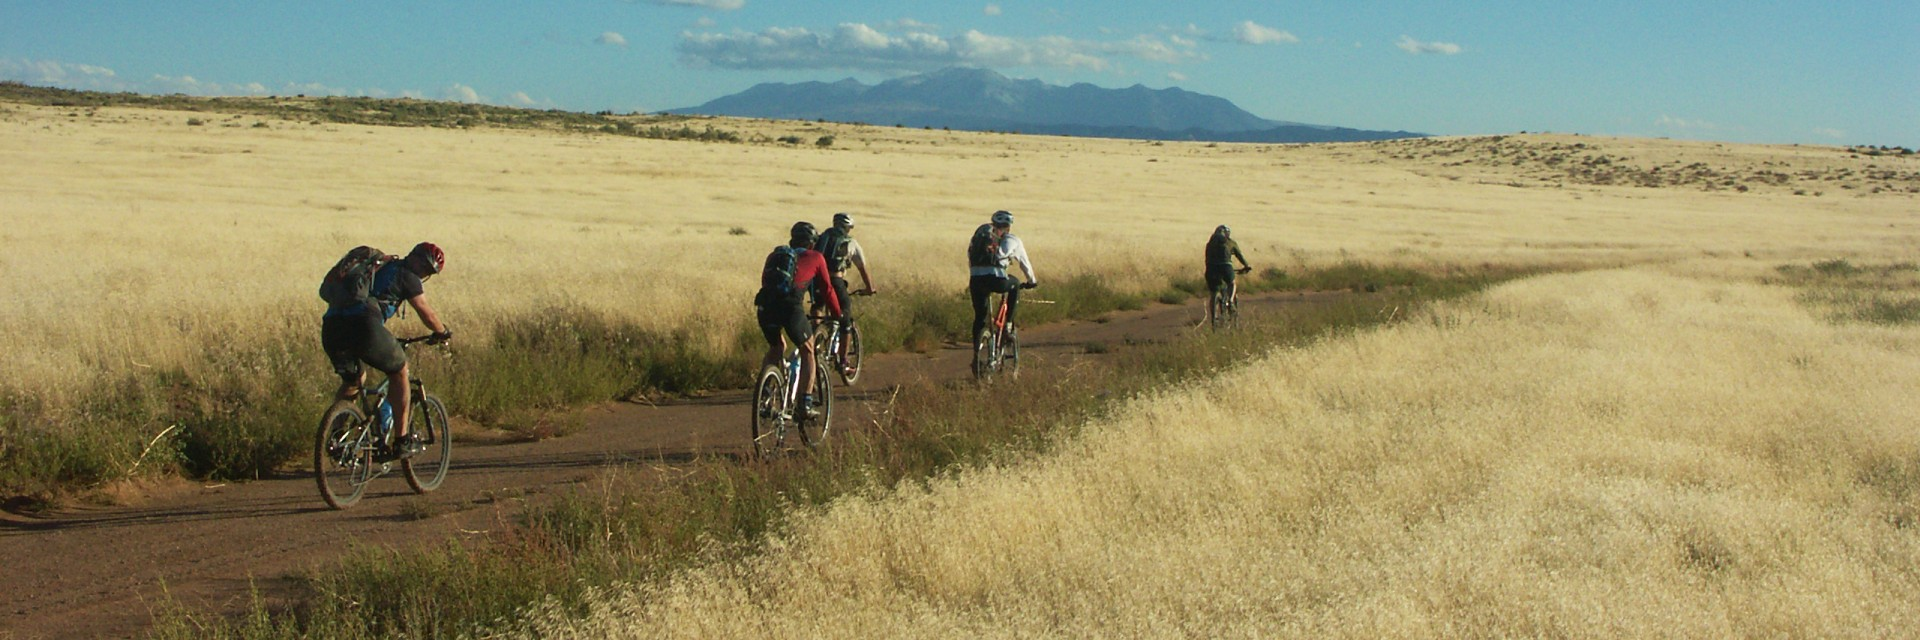 Riders on the Kokopelli Trail 5-day guided mountain bike tour from Loma CO to Moab UT head across the Cisco desert